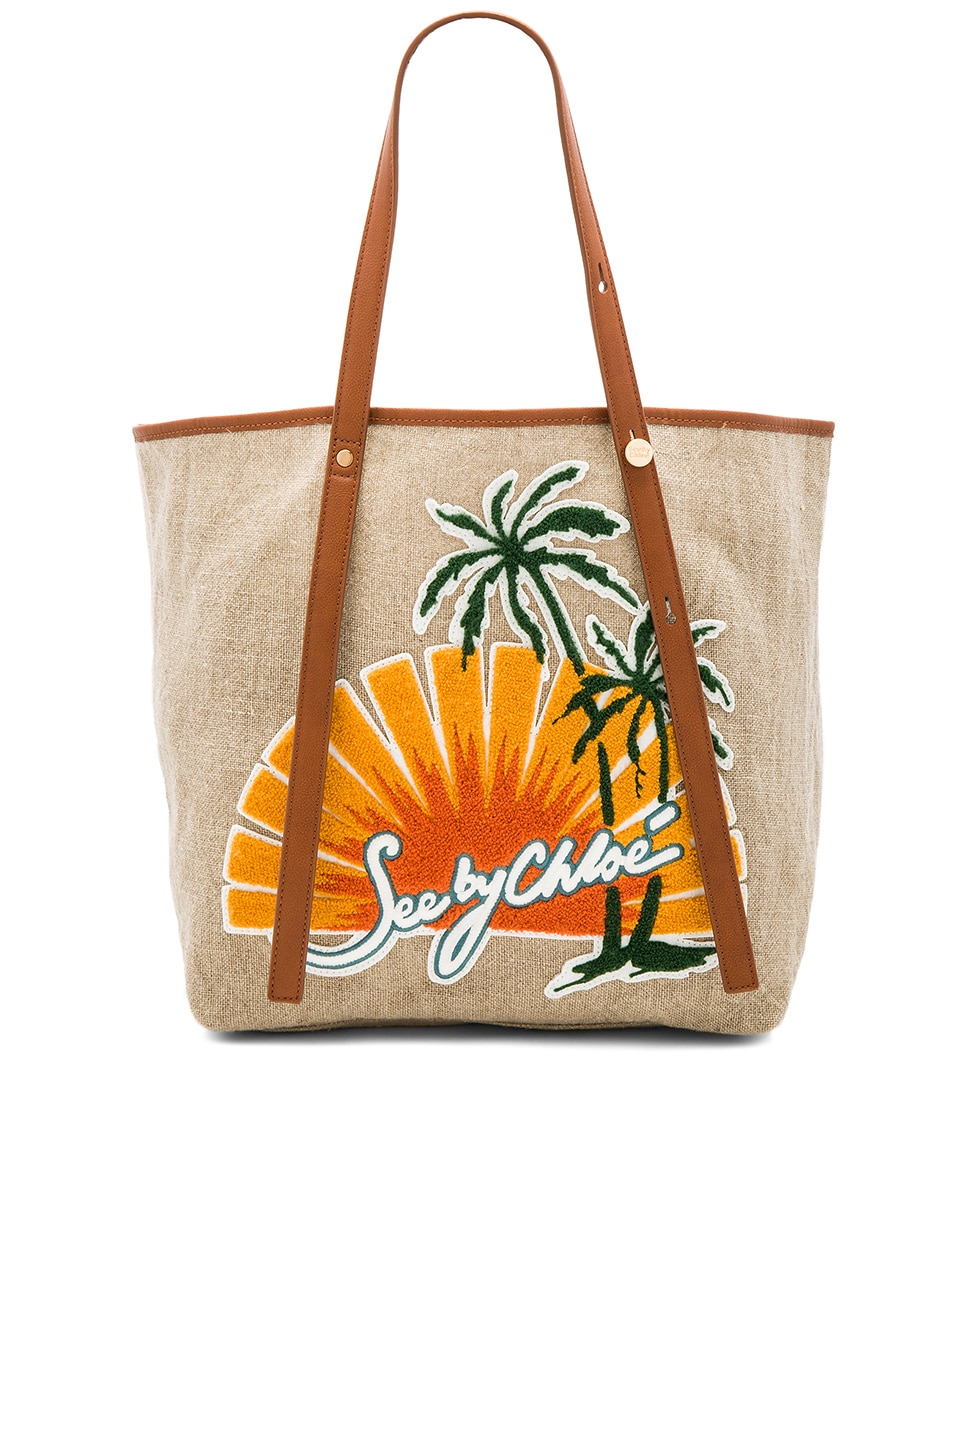 See By Chloe Tote Bag in Sunset